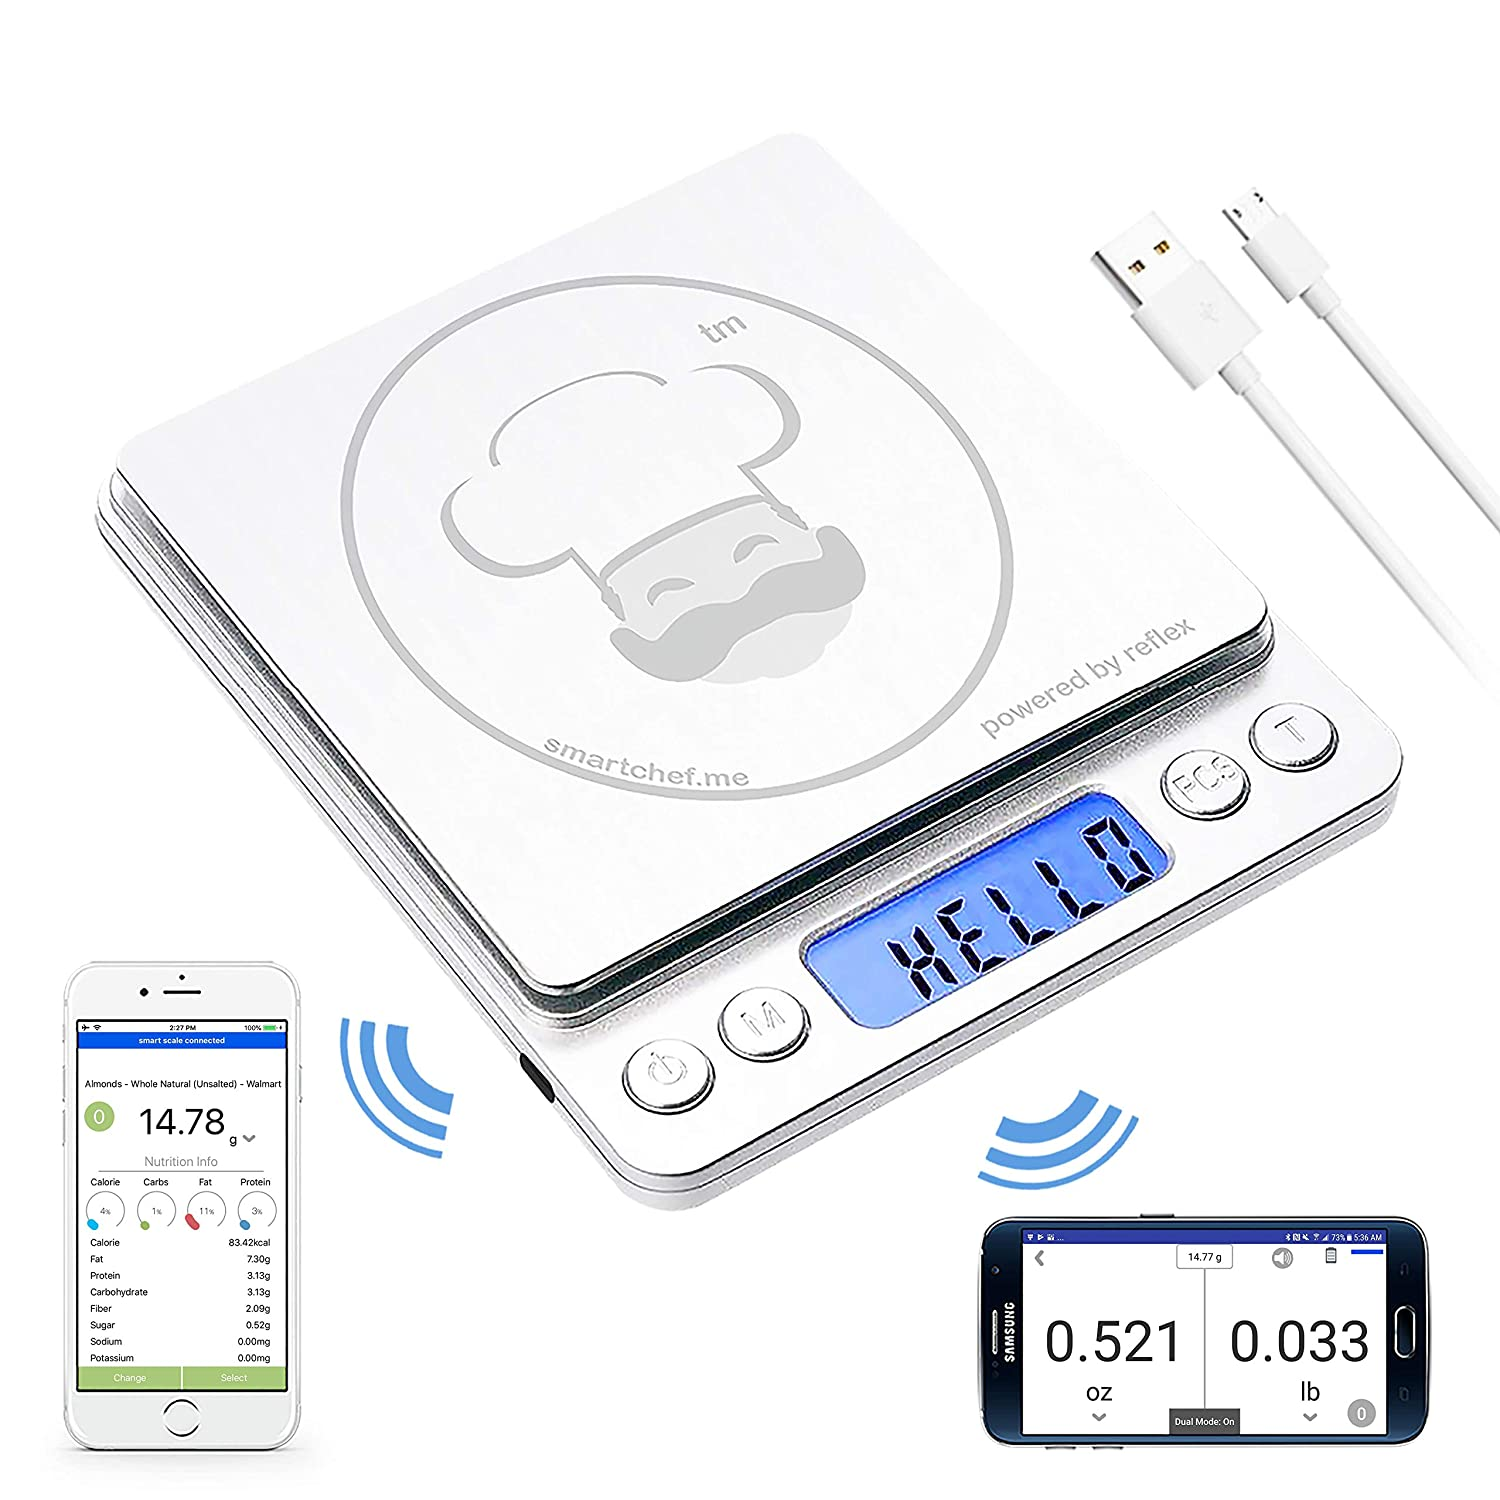 reflex 500g / 0.01g Digital Pocket Wireless smart food kitchen Scale grams and ounces USB rechargeable, portable, accurate, metal stainless steel surface, nutritional keto calculator, baking, counter